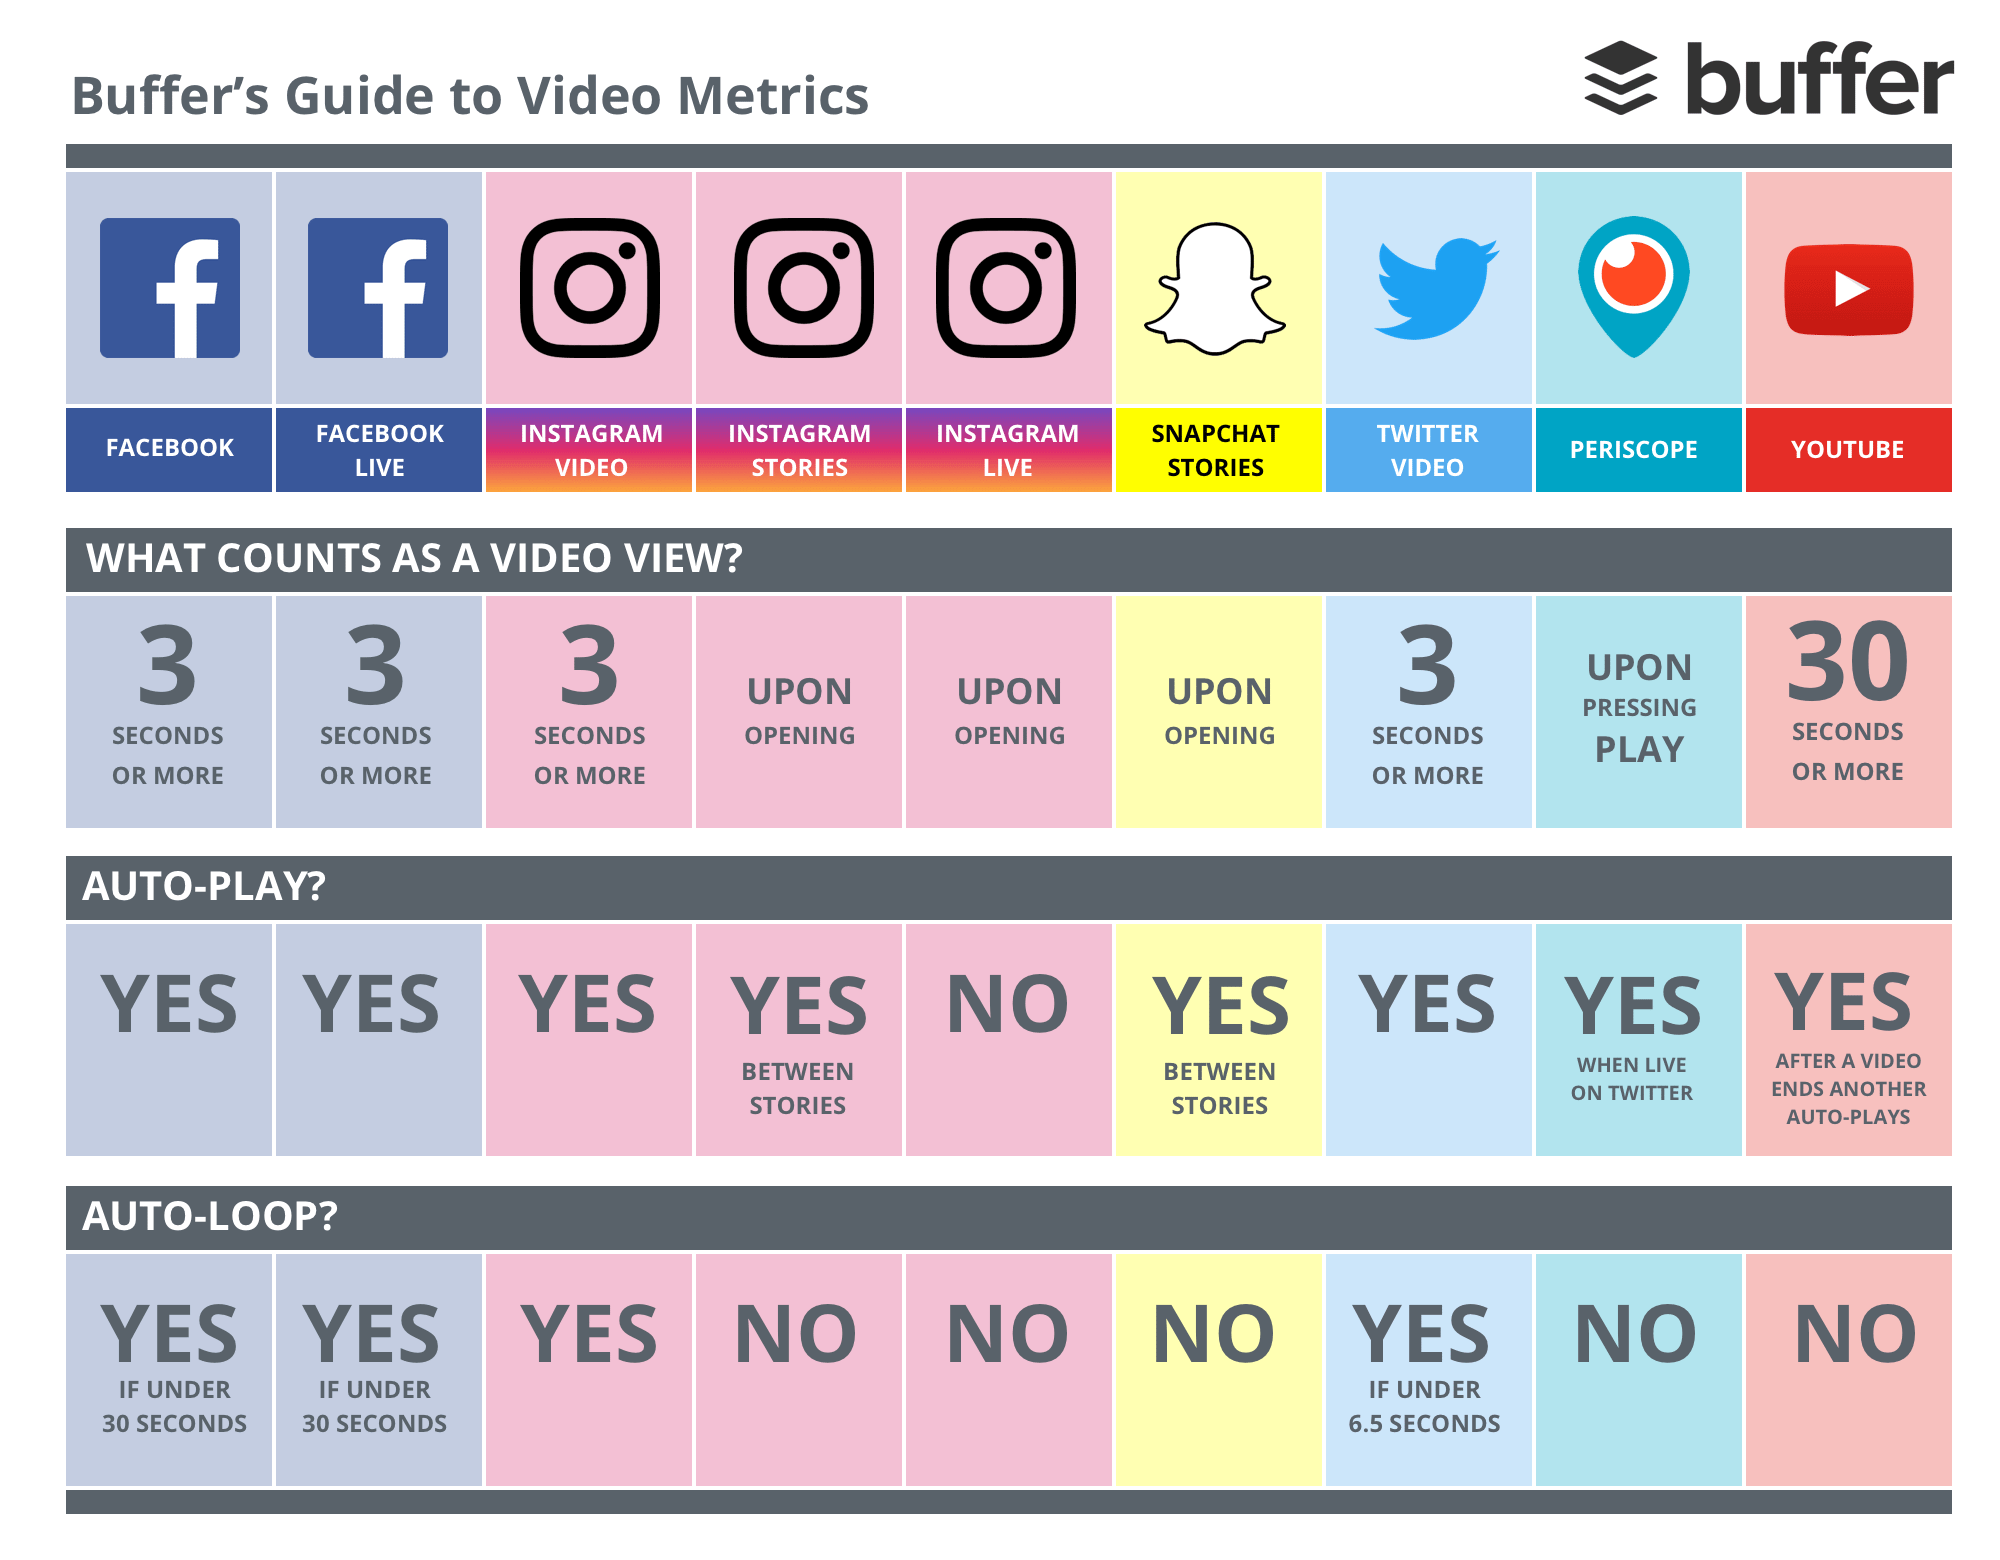 wersm-buffer-video-view-infographic